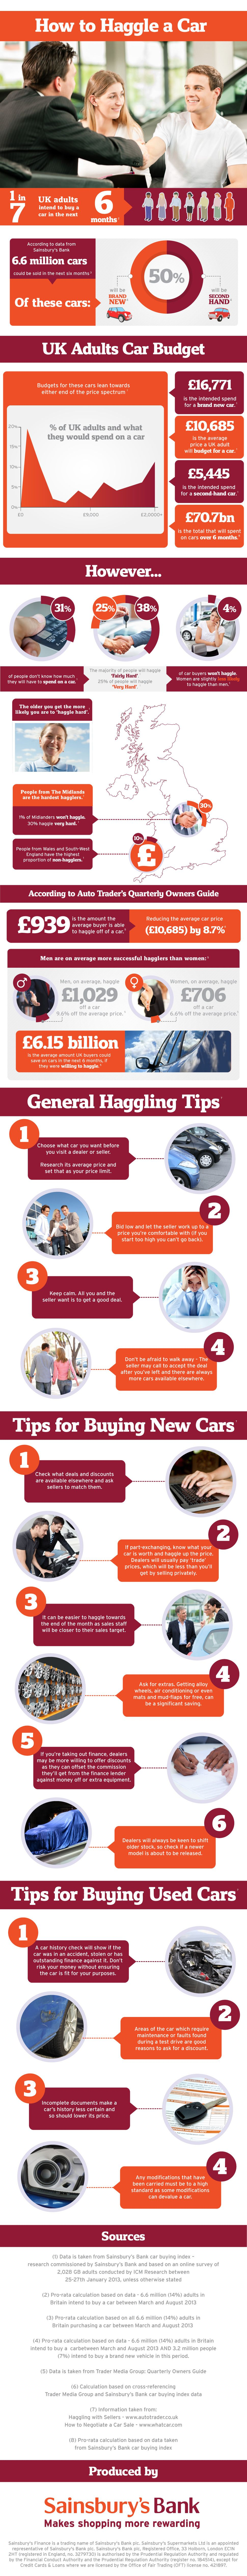 How To Haggle A Car Infographic Http Www Sainsburysbank Co Uk